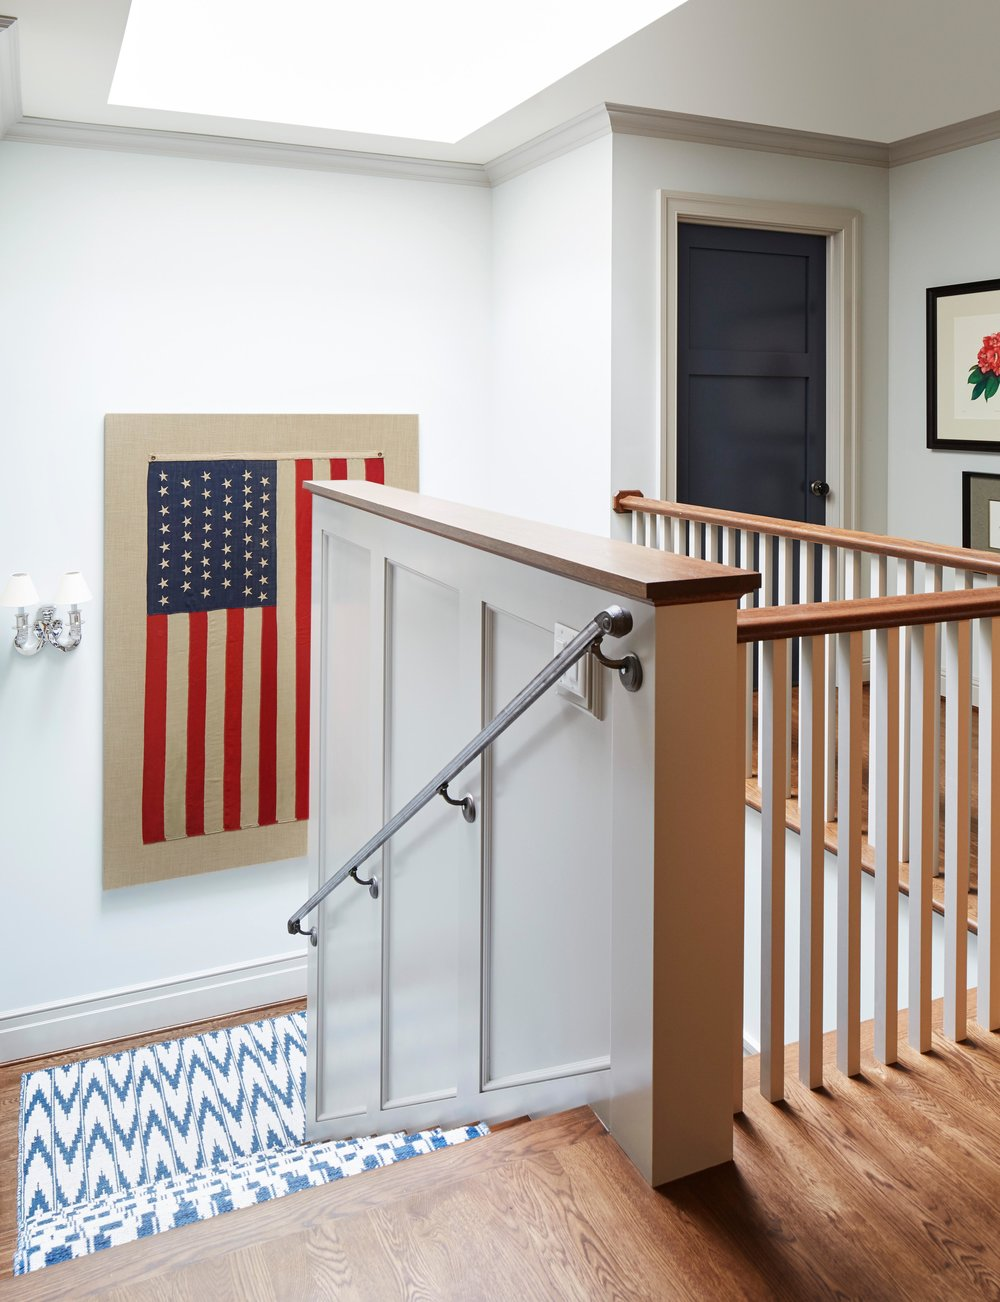 American flag framed on wall near staircase. Come see more interior design inspiration from Elizabeth Drake. Photo by Werner Straube. #interiordesign #classicdesign #traditionaldecor #housetour #elizabethdrake